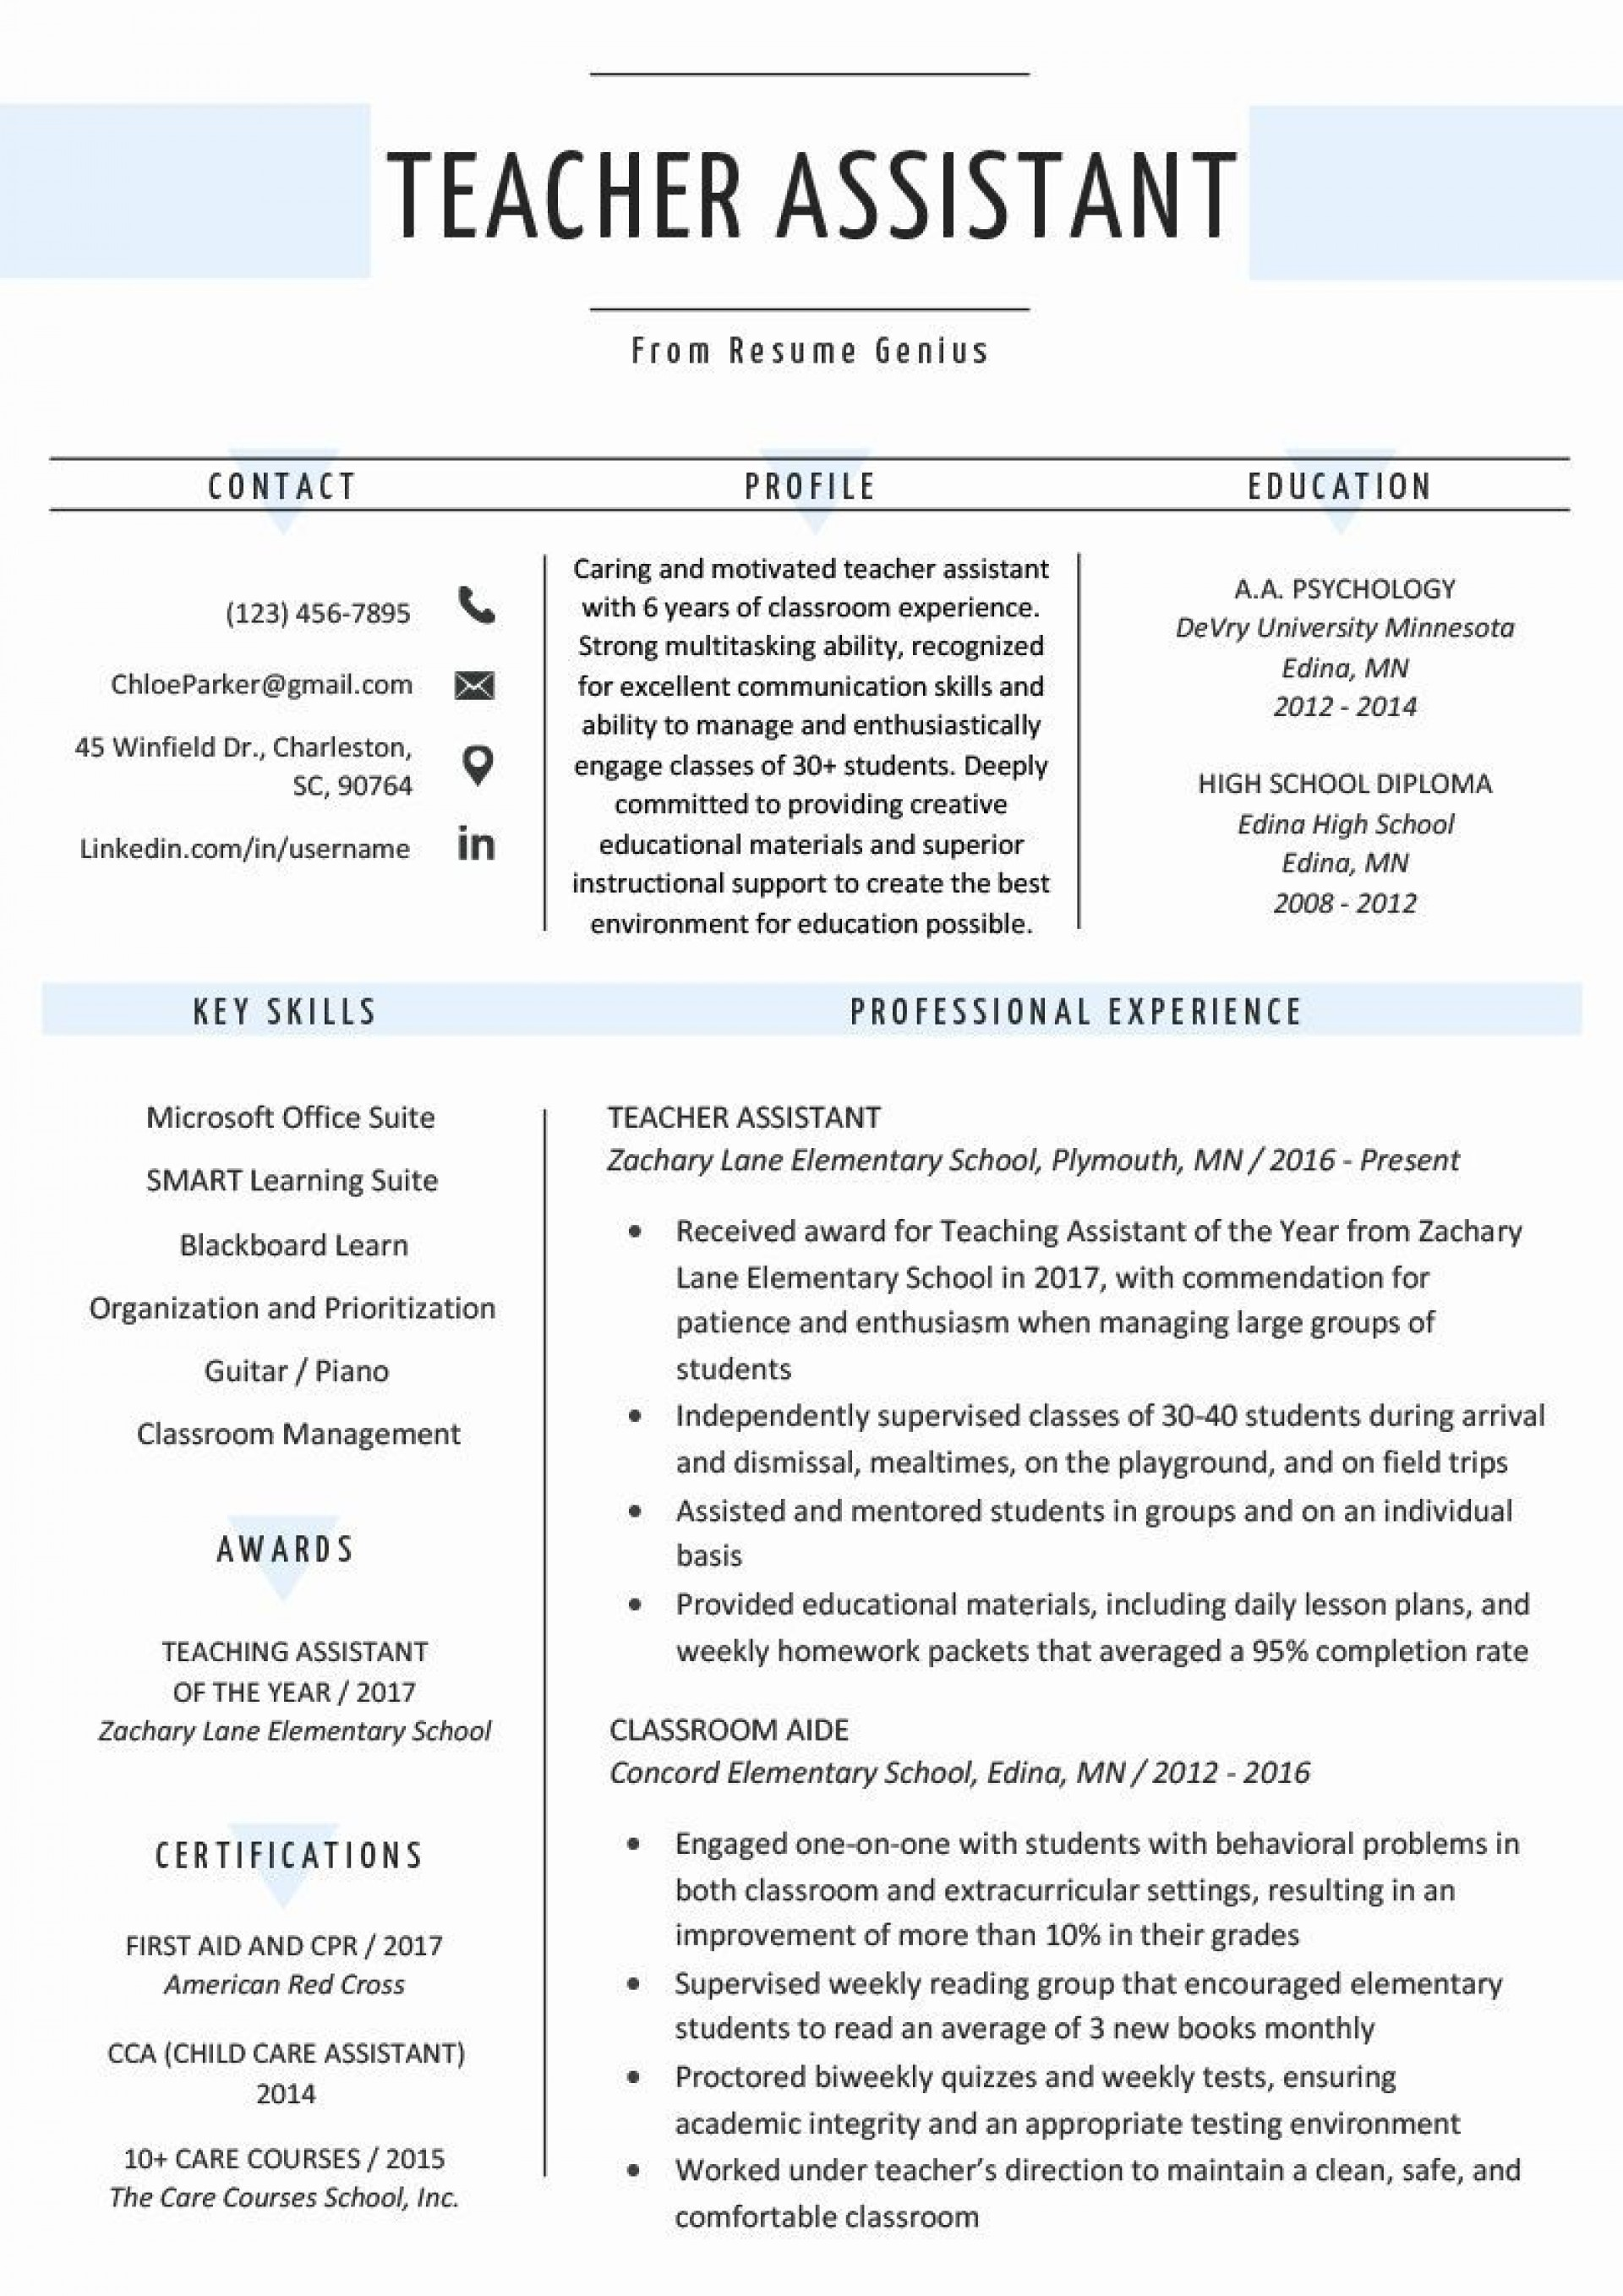 000 Simple Cv Template For Teaching Concept  Sample Teacher Assistant Modern Word Free Download Job1920